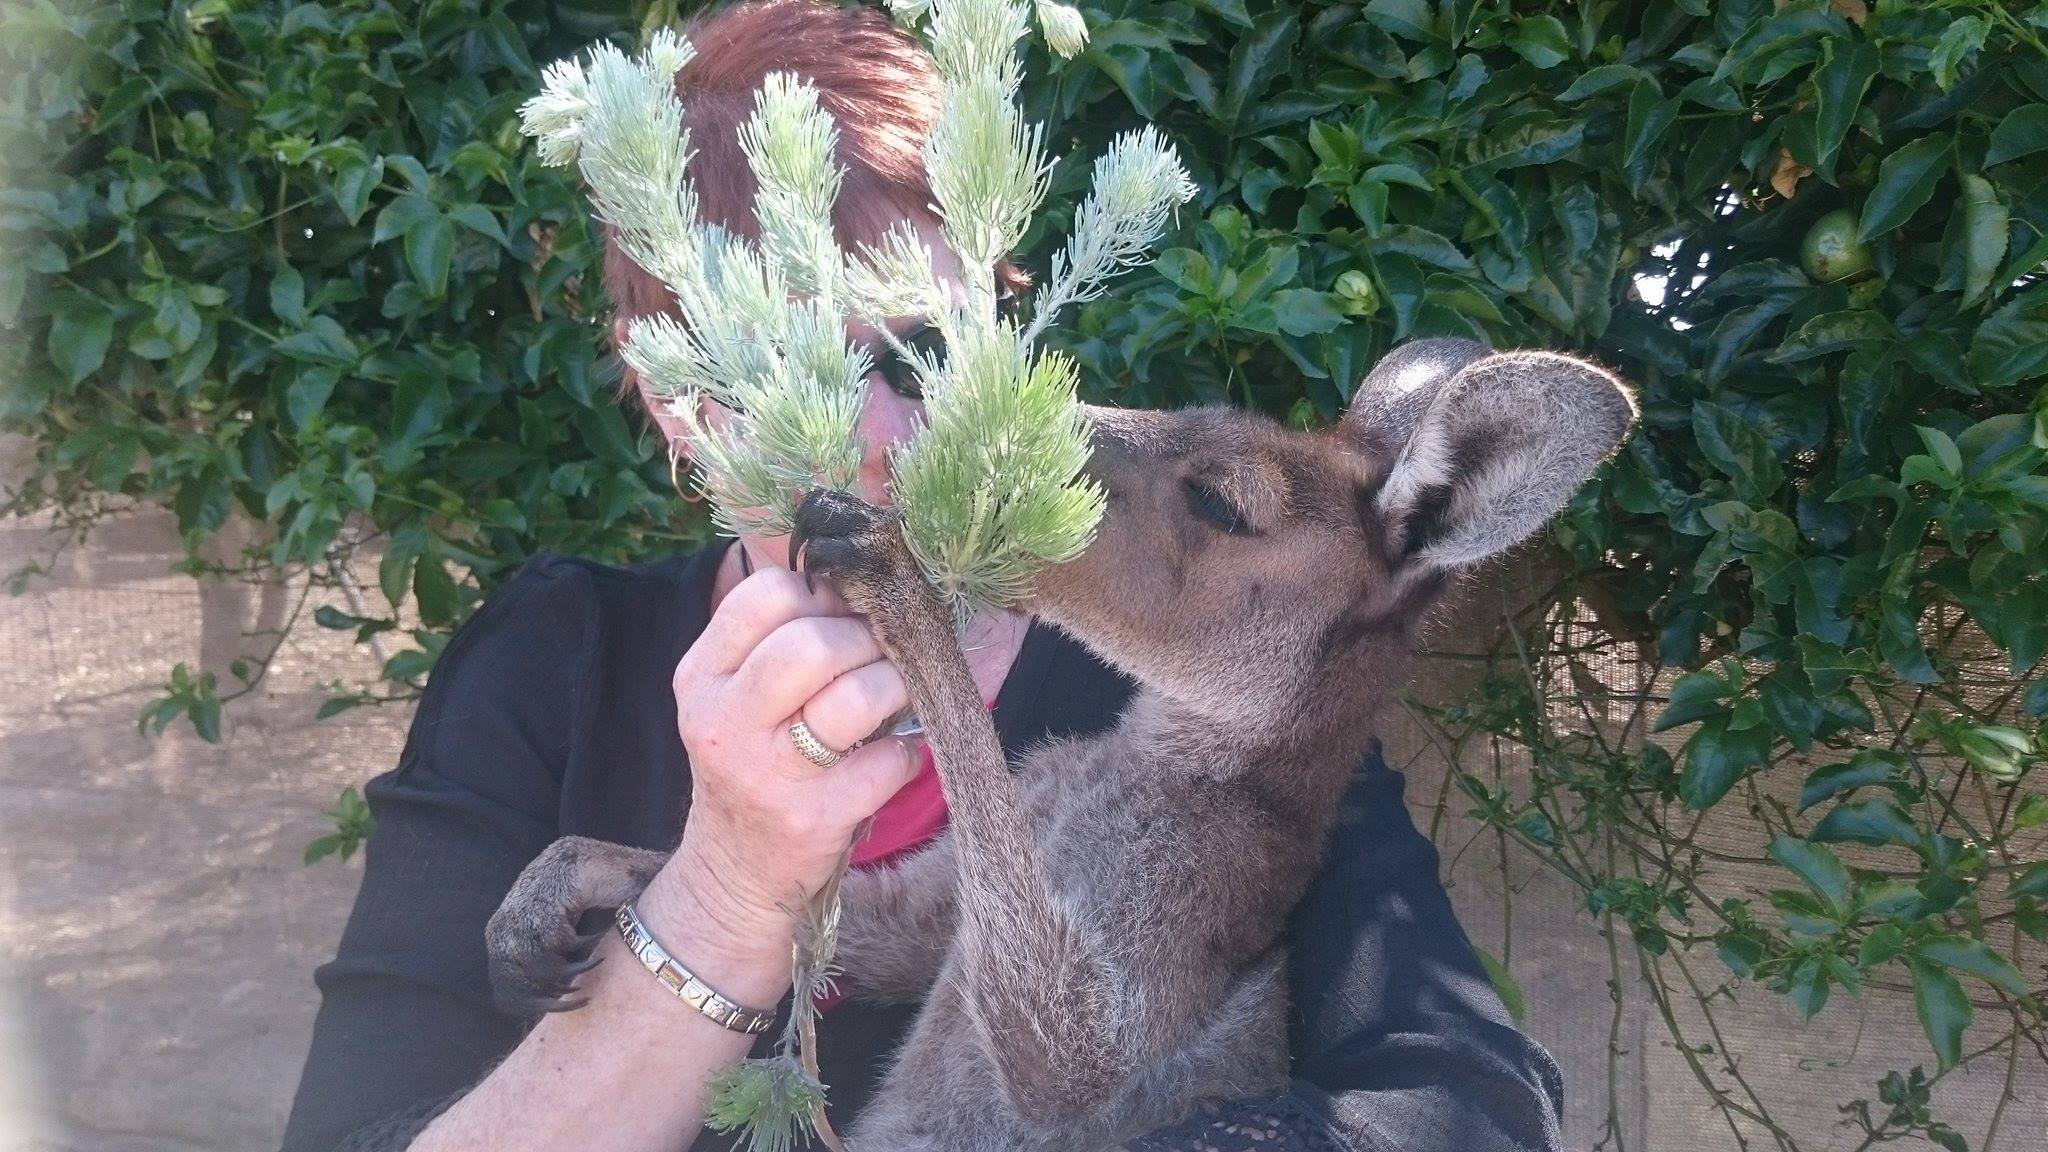 Sammie Jo was our rescue joey in care and loves her woolly bush.  Sammie Jo is now running free with her new family and still loves her woolly bush.